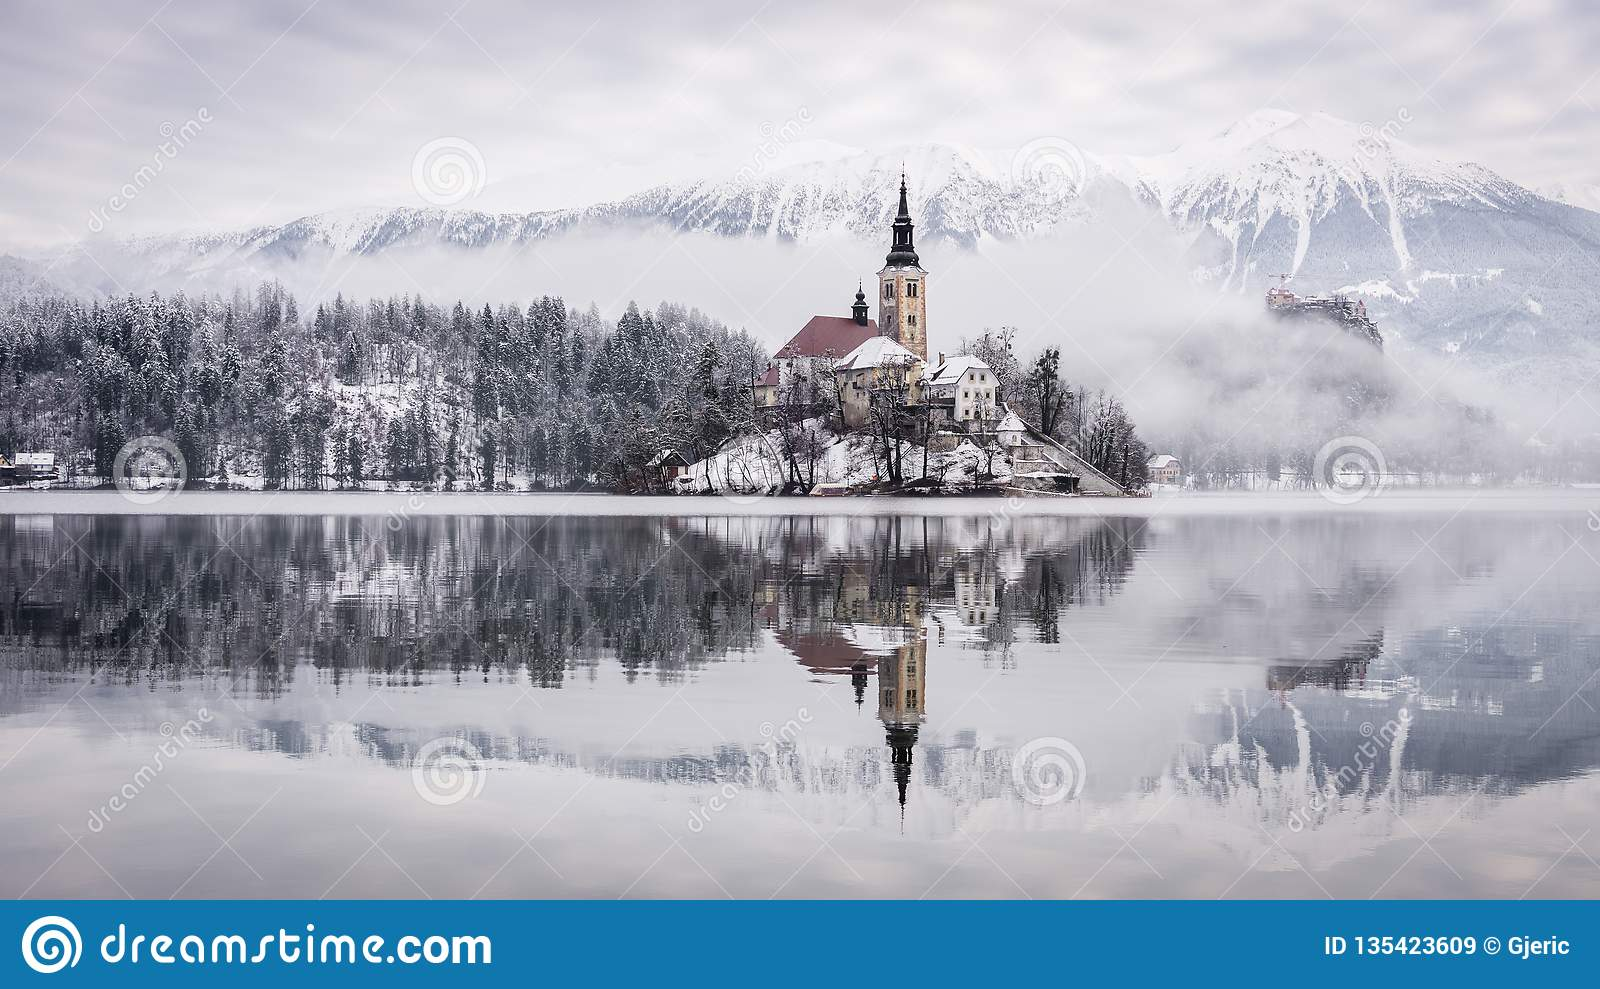 Lake Bled with St. Marys Church of the Assumption on the small island - Bled, Slovenia, Europe.